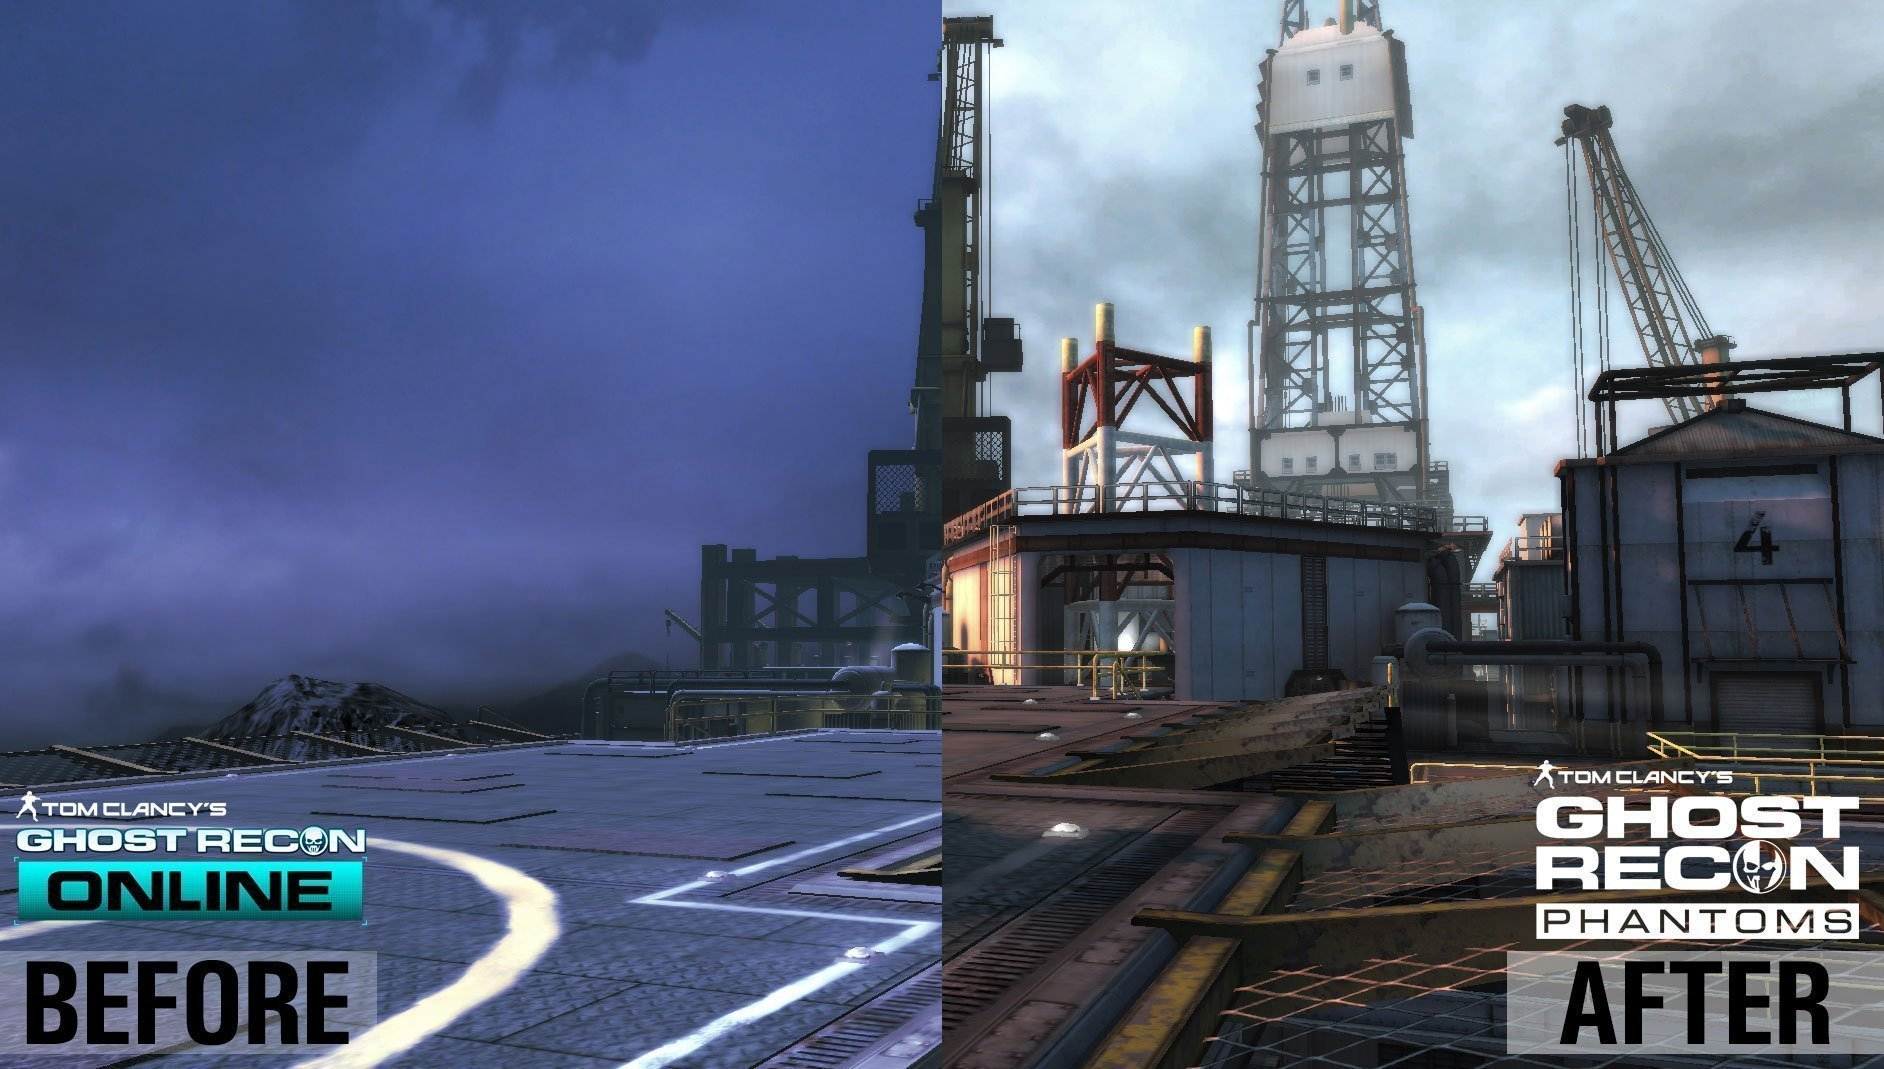 before-after_View3_UK.jpg